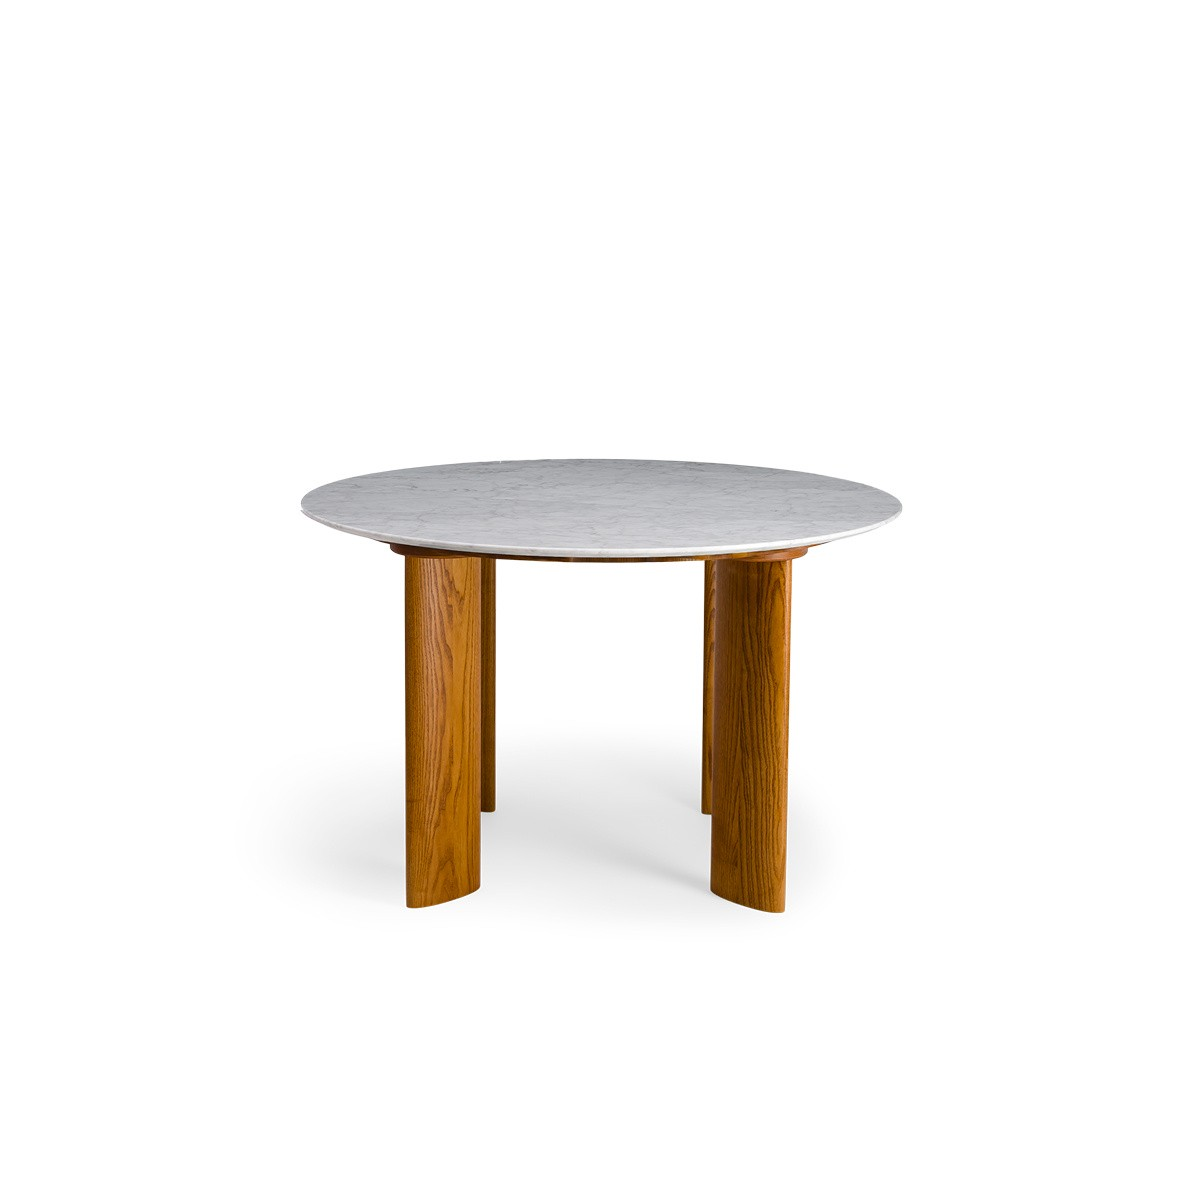 Carlotta Alta Dining Table White Marble and Iroko Finish Legs - 4 Seats